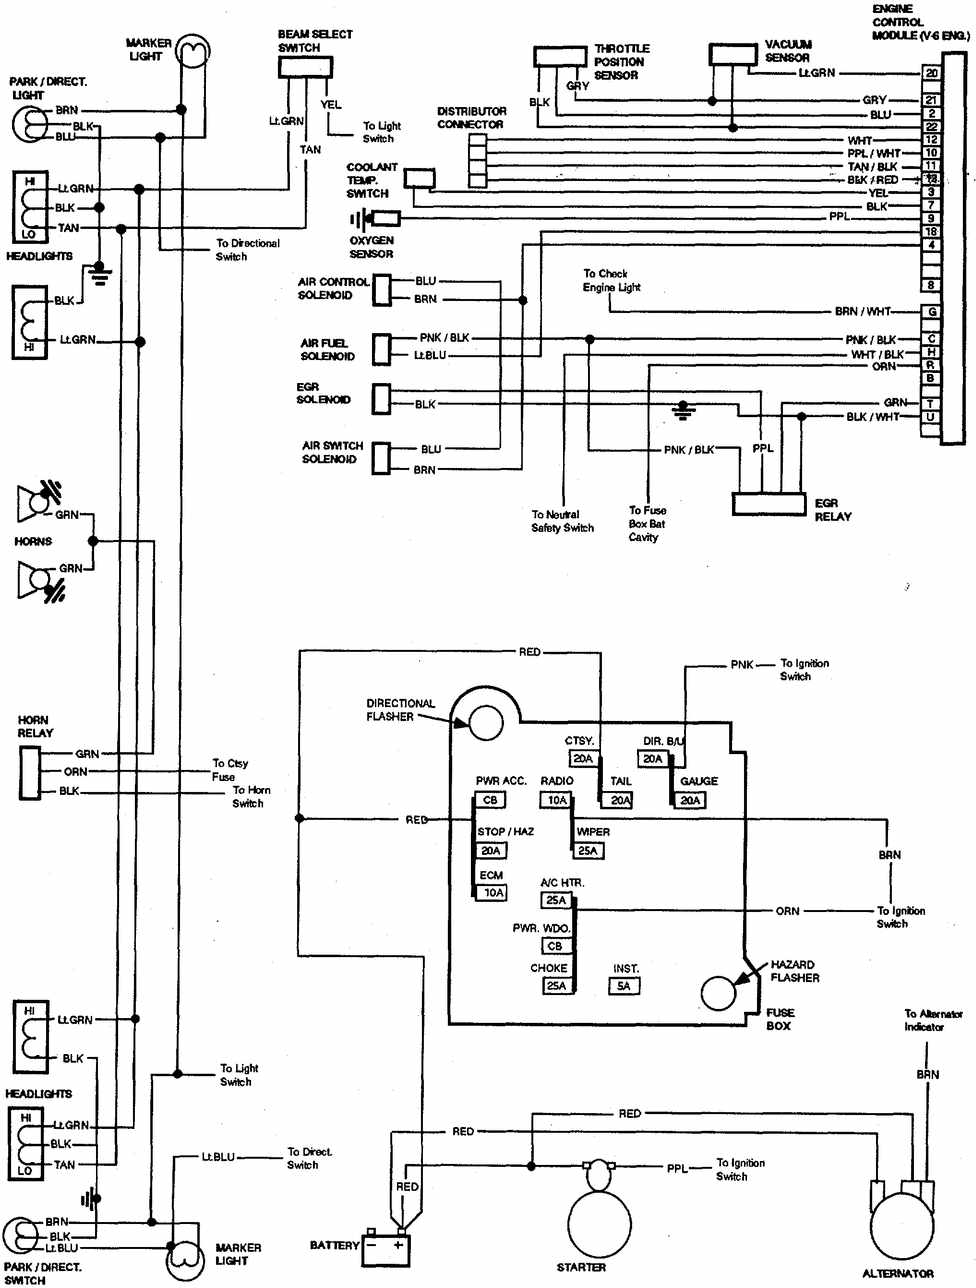 2000 chevy suburban wiring diagram